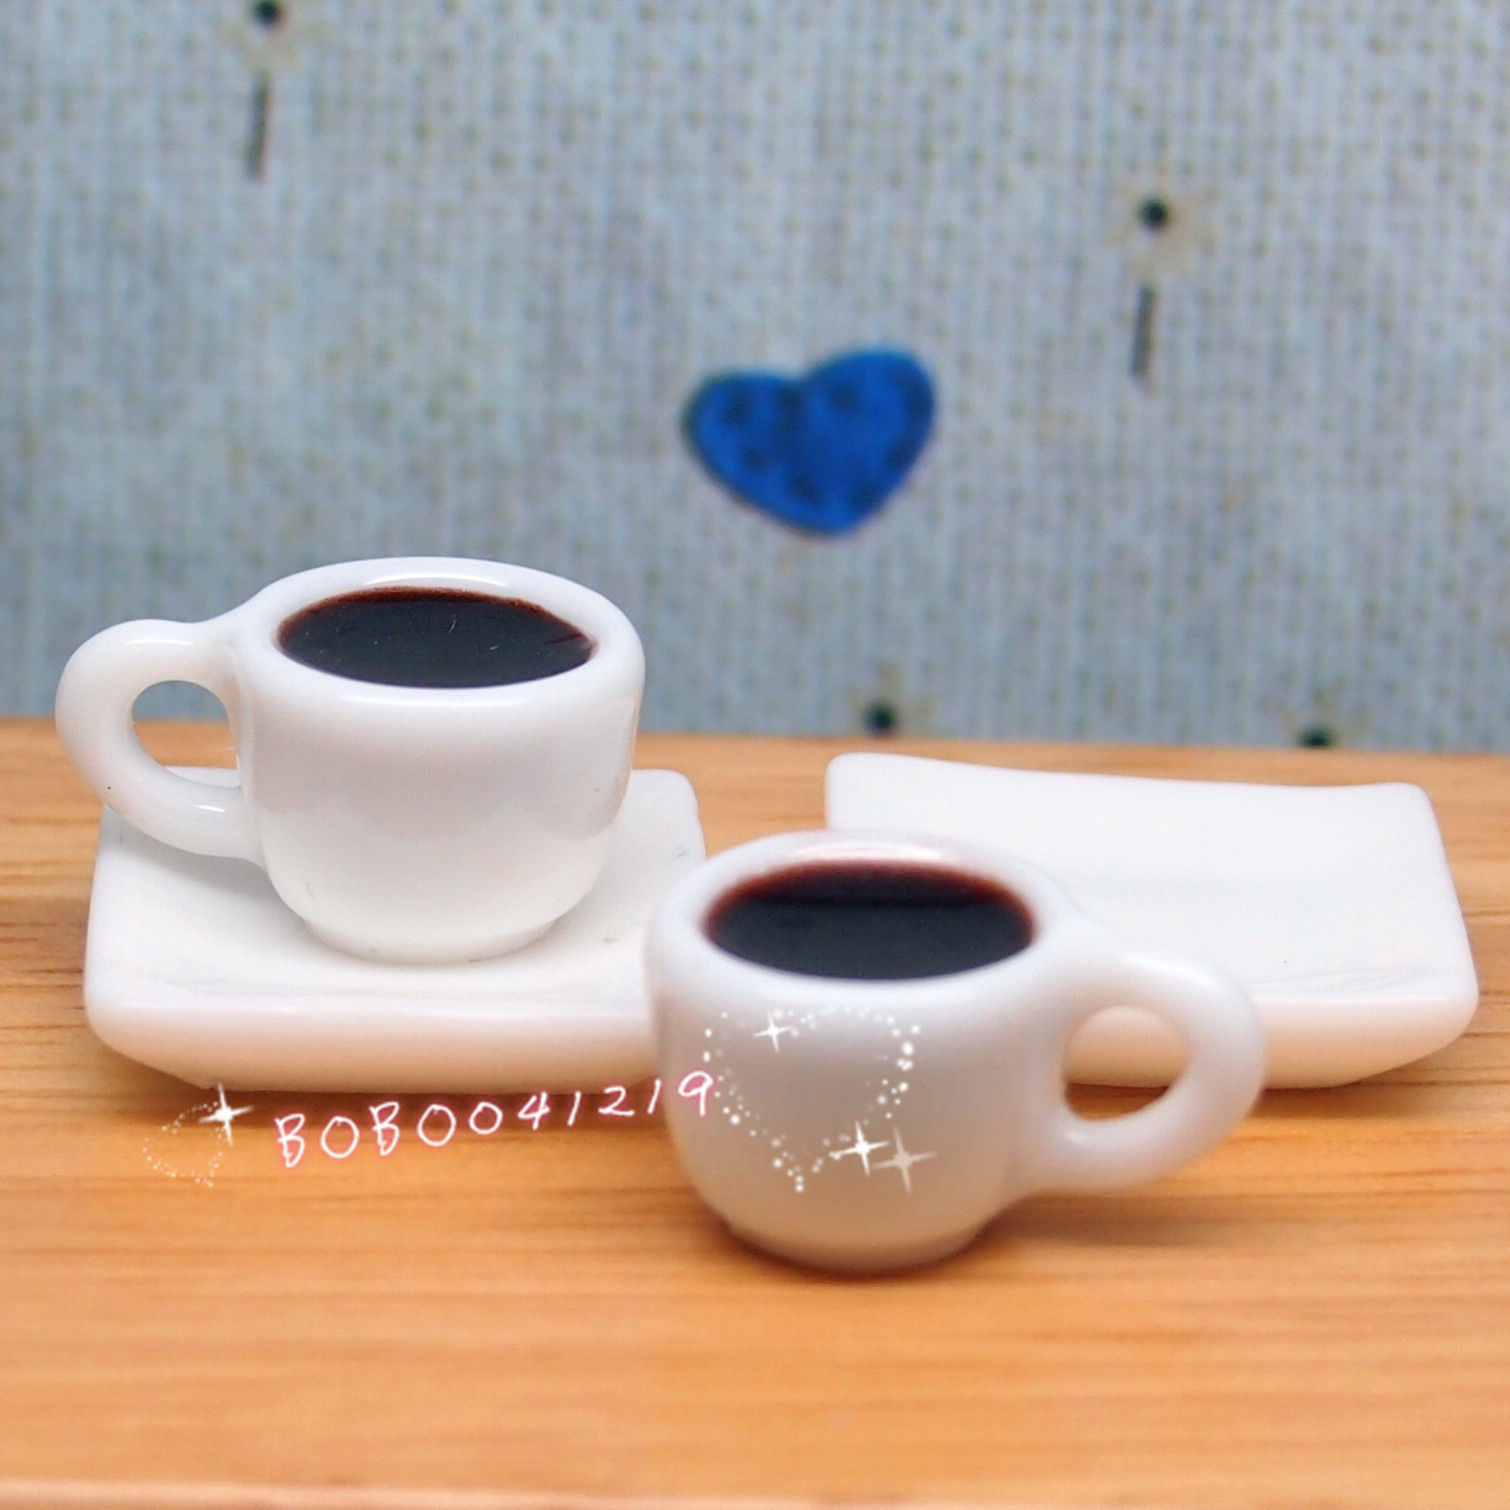 aliexpress dollhouse miniature kitchen drink 2 cups of